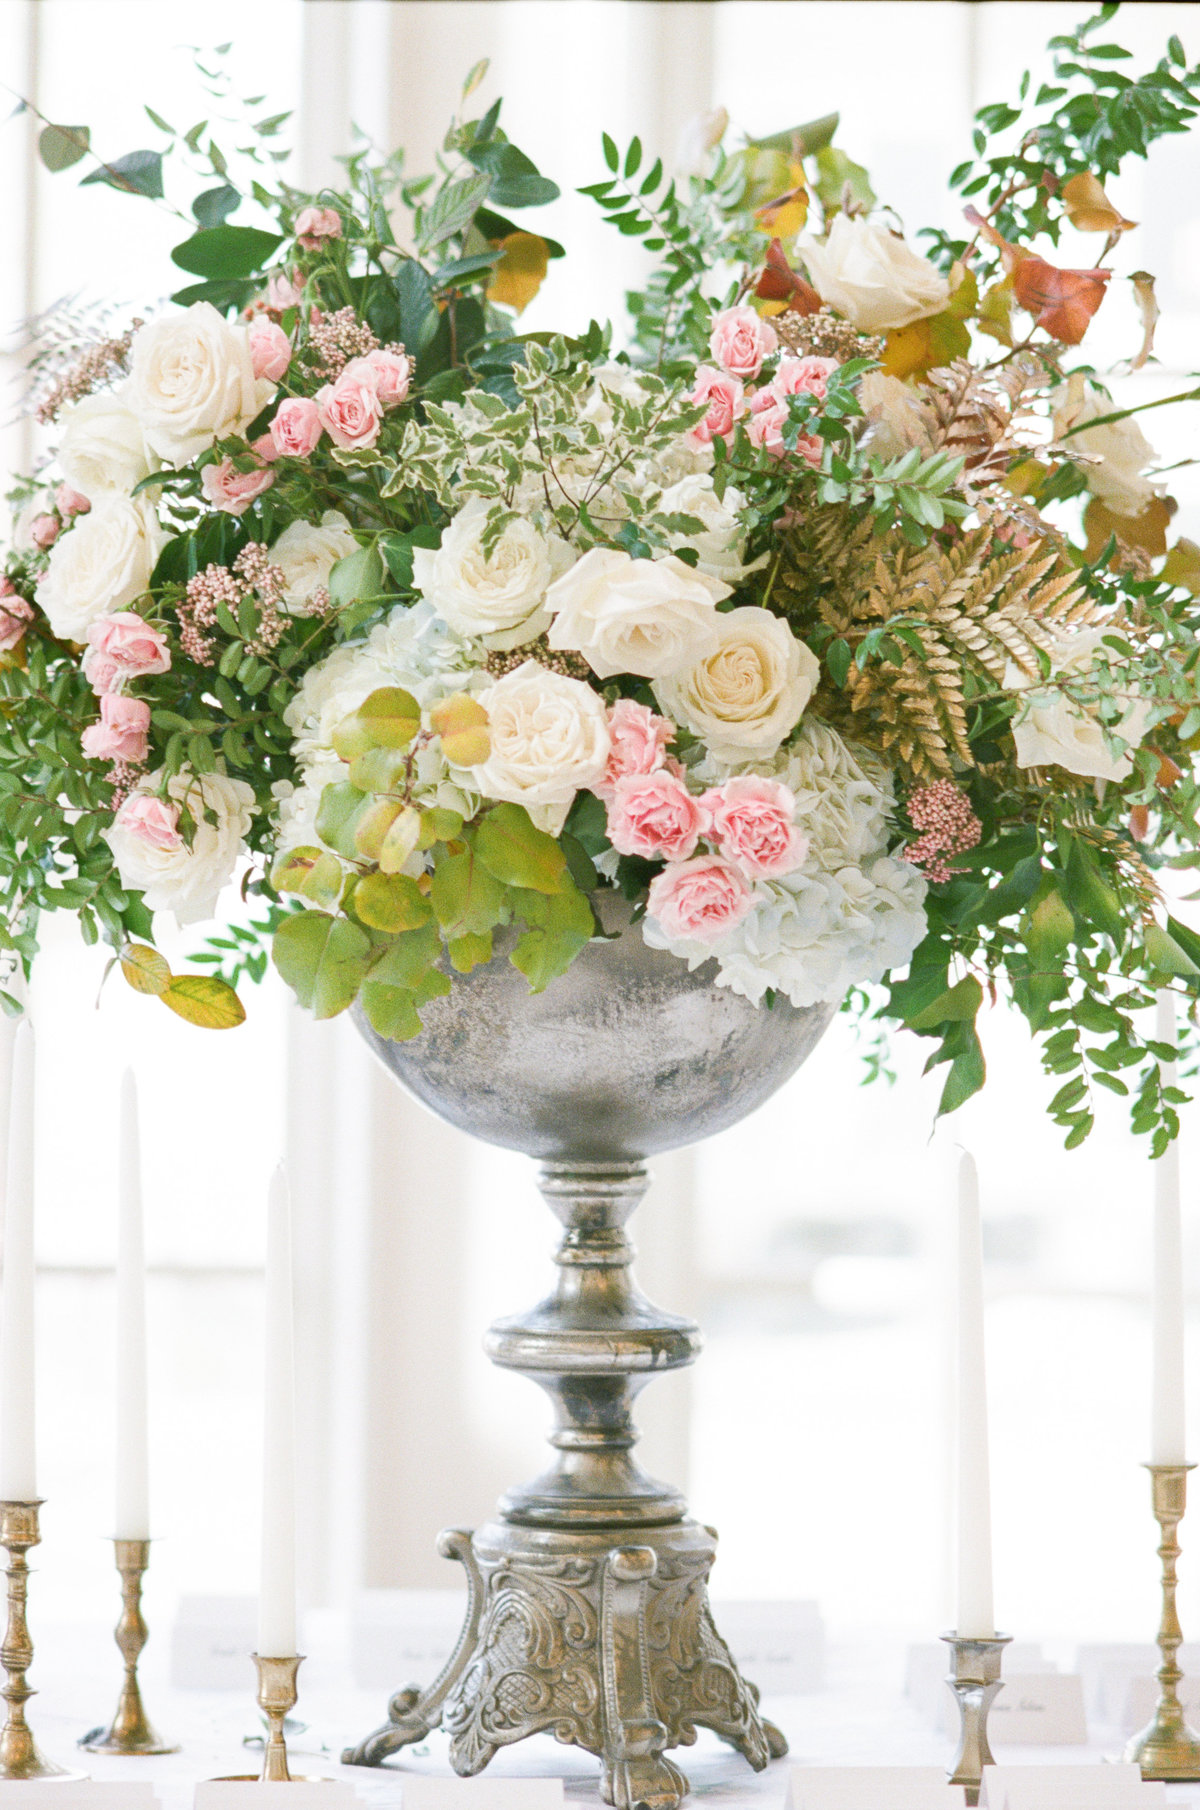 Tall floral arrangement on wedding reception table